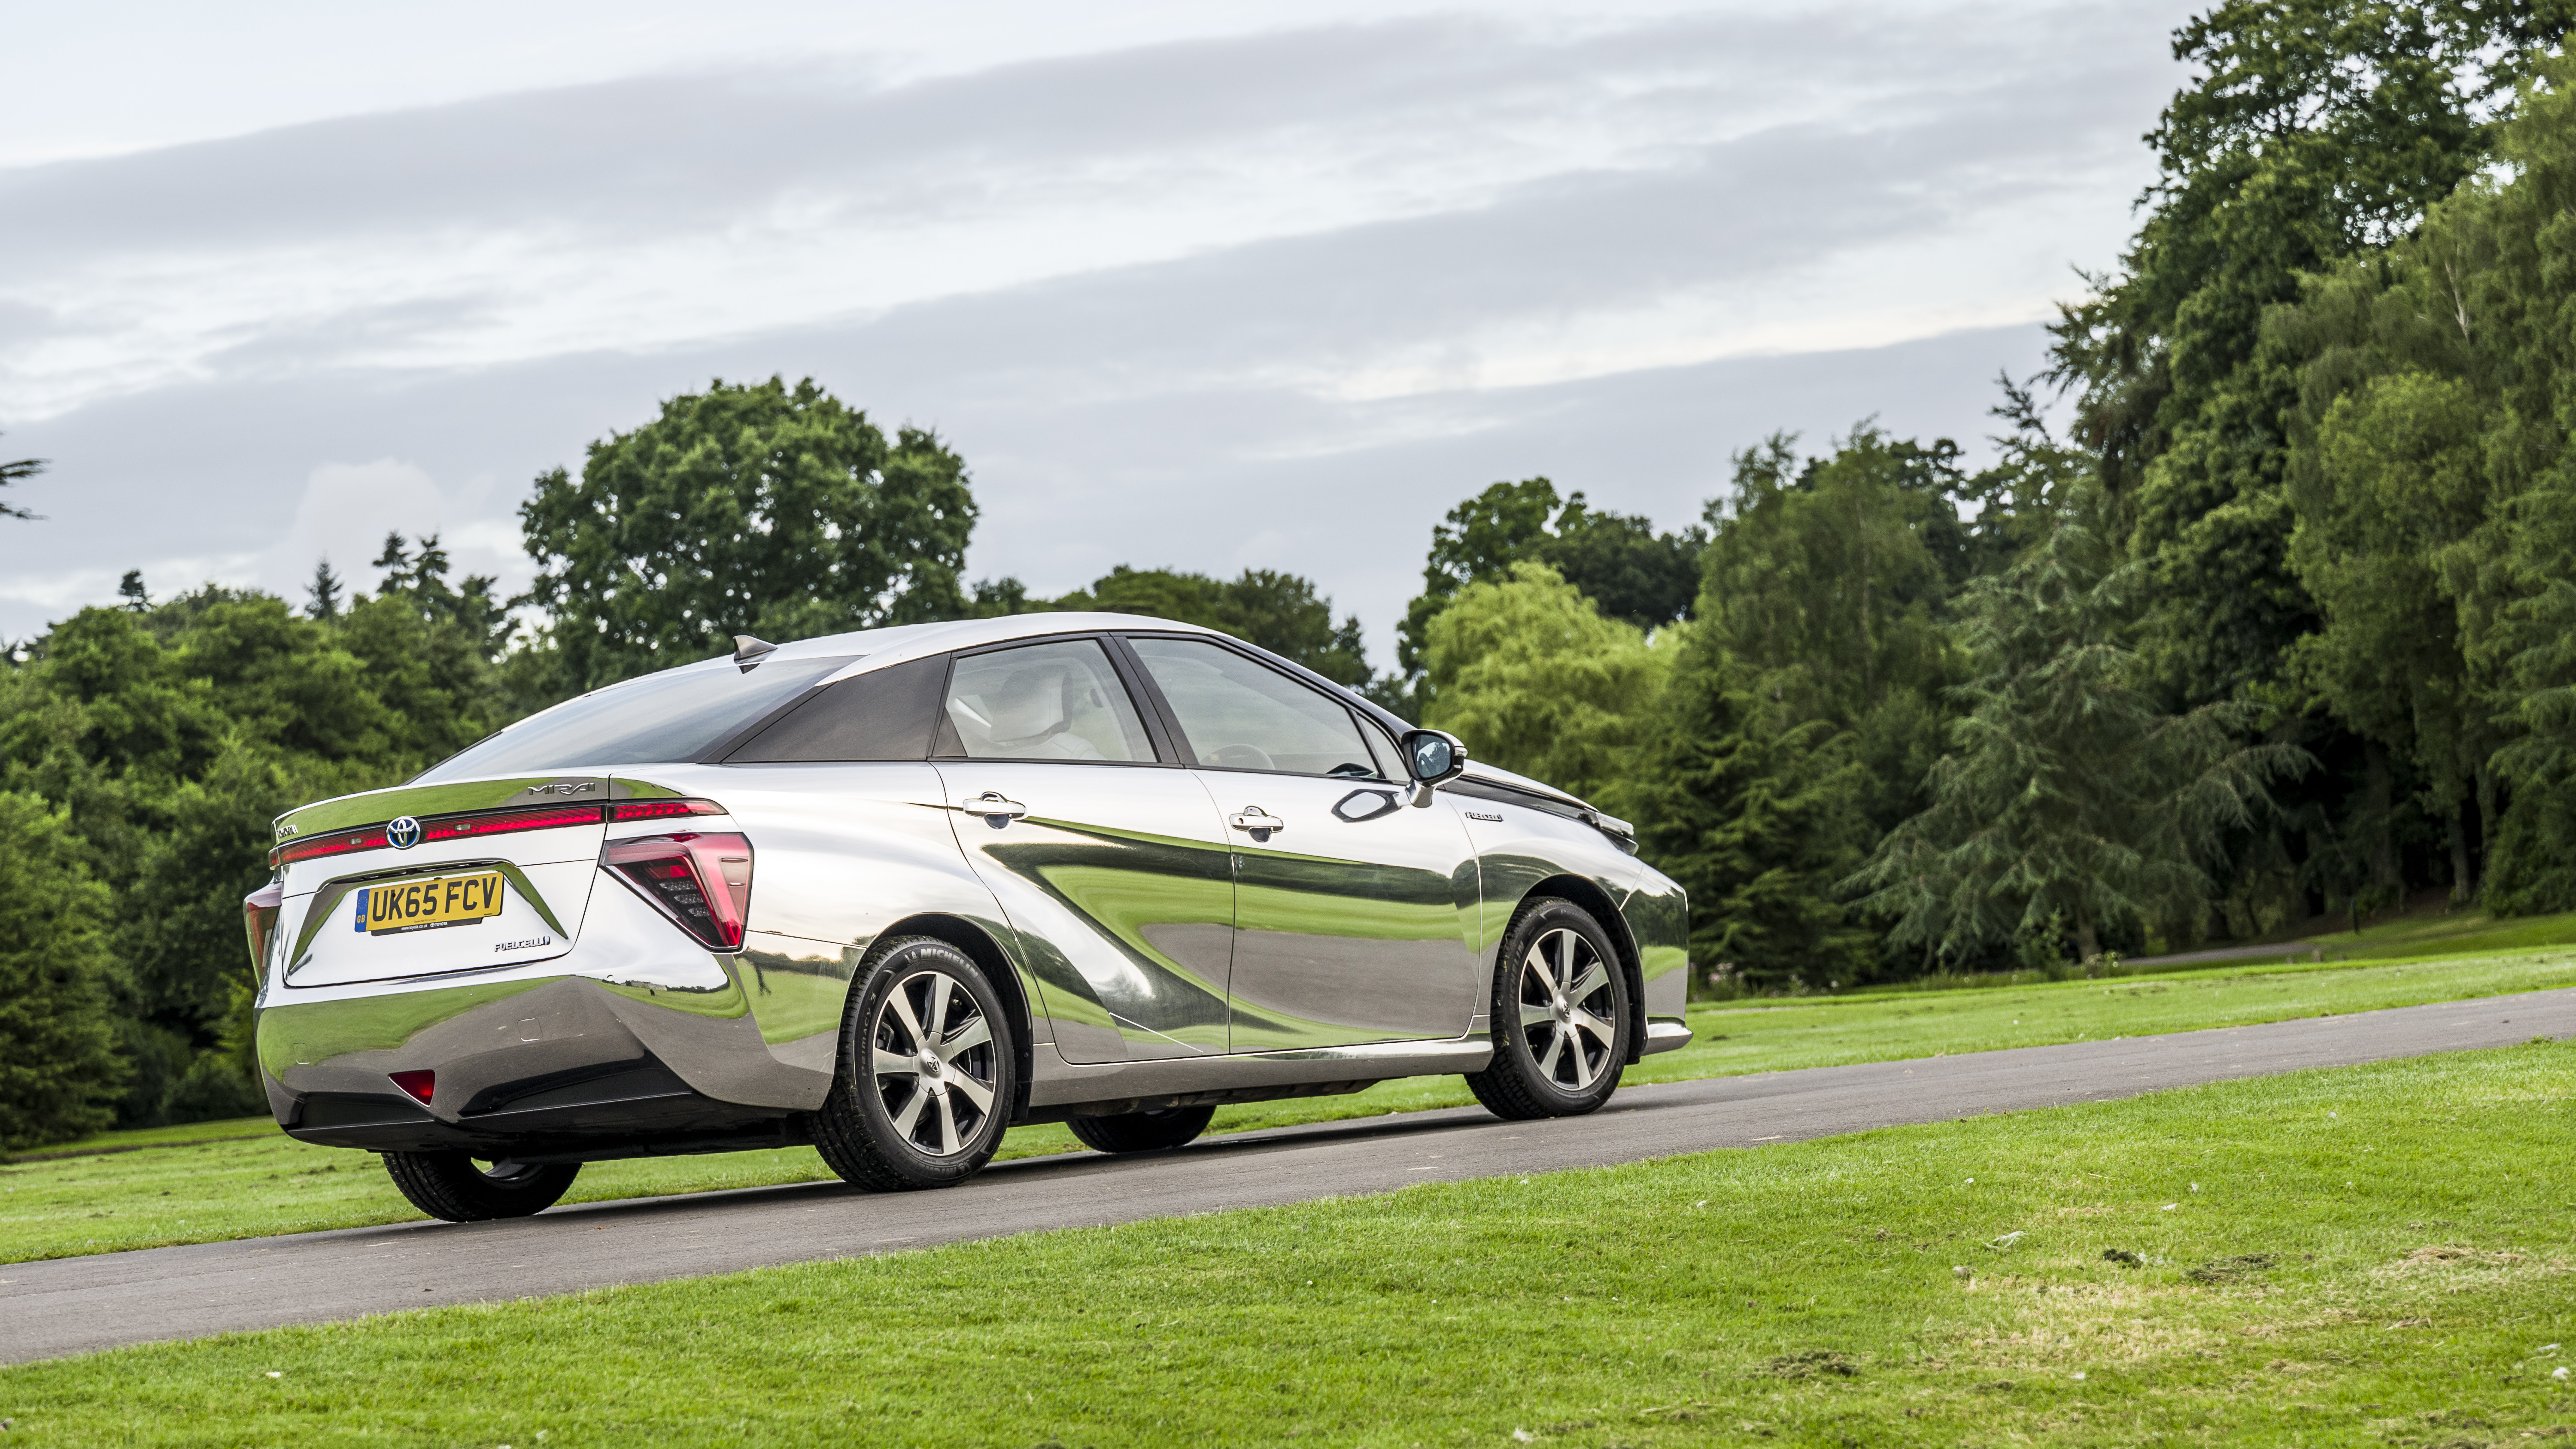 Hydrogen Cars: Hydrogen Cars: Powered By Air And The Only Emission Is